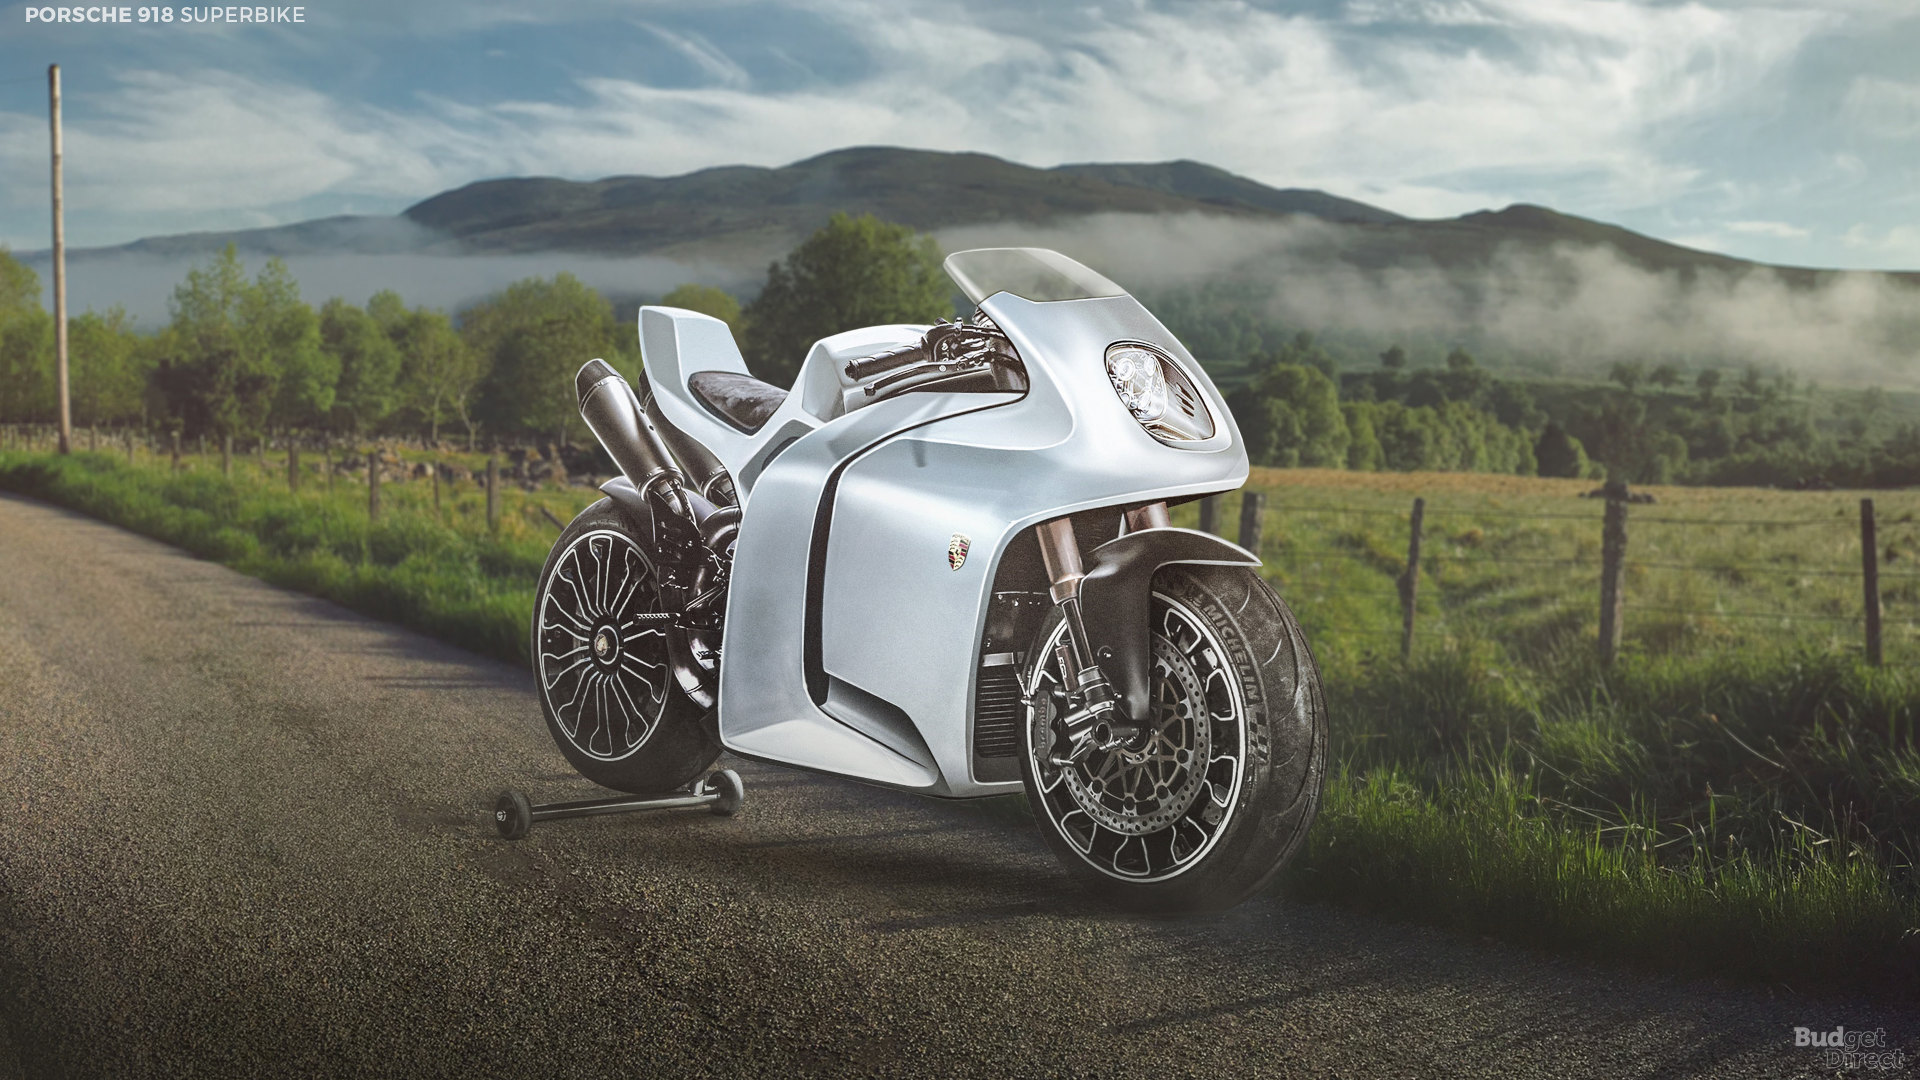 What if supercar brands made superbikes? A Porsche superbike won't hurt, here's one based on the 918 Spyder.